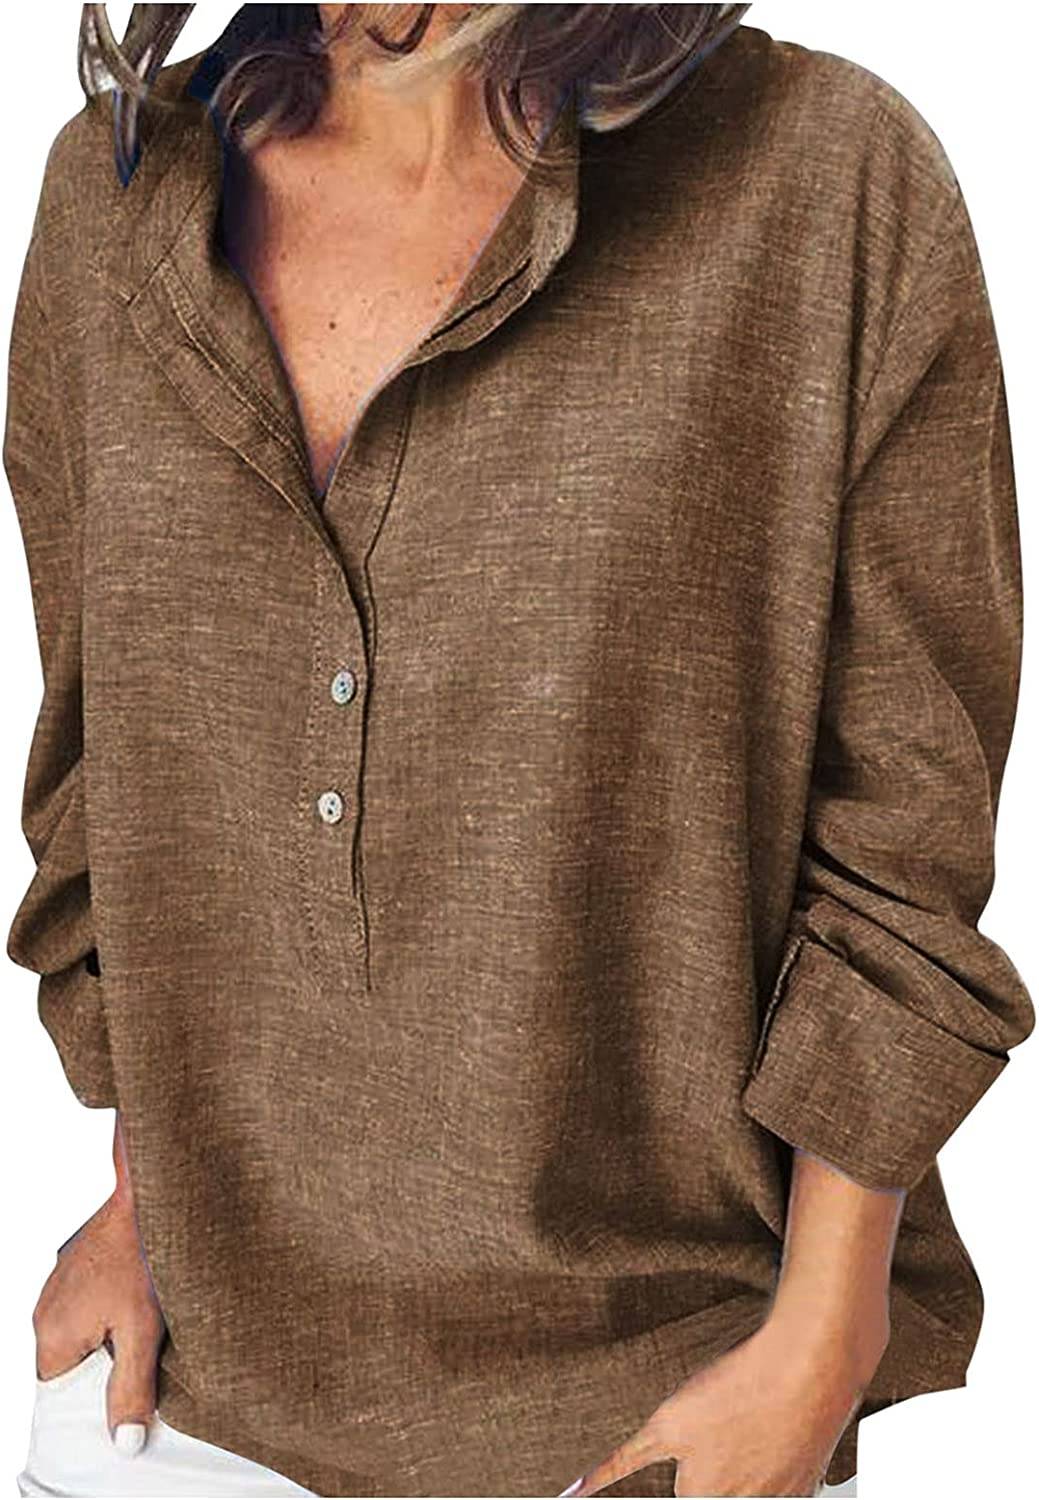 Pandaie Solid Color Shirt Challenge the lowest Max 63% OFF price for Women Down Henley Lapel Button Lon